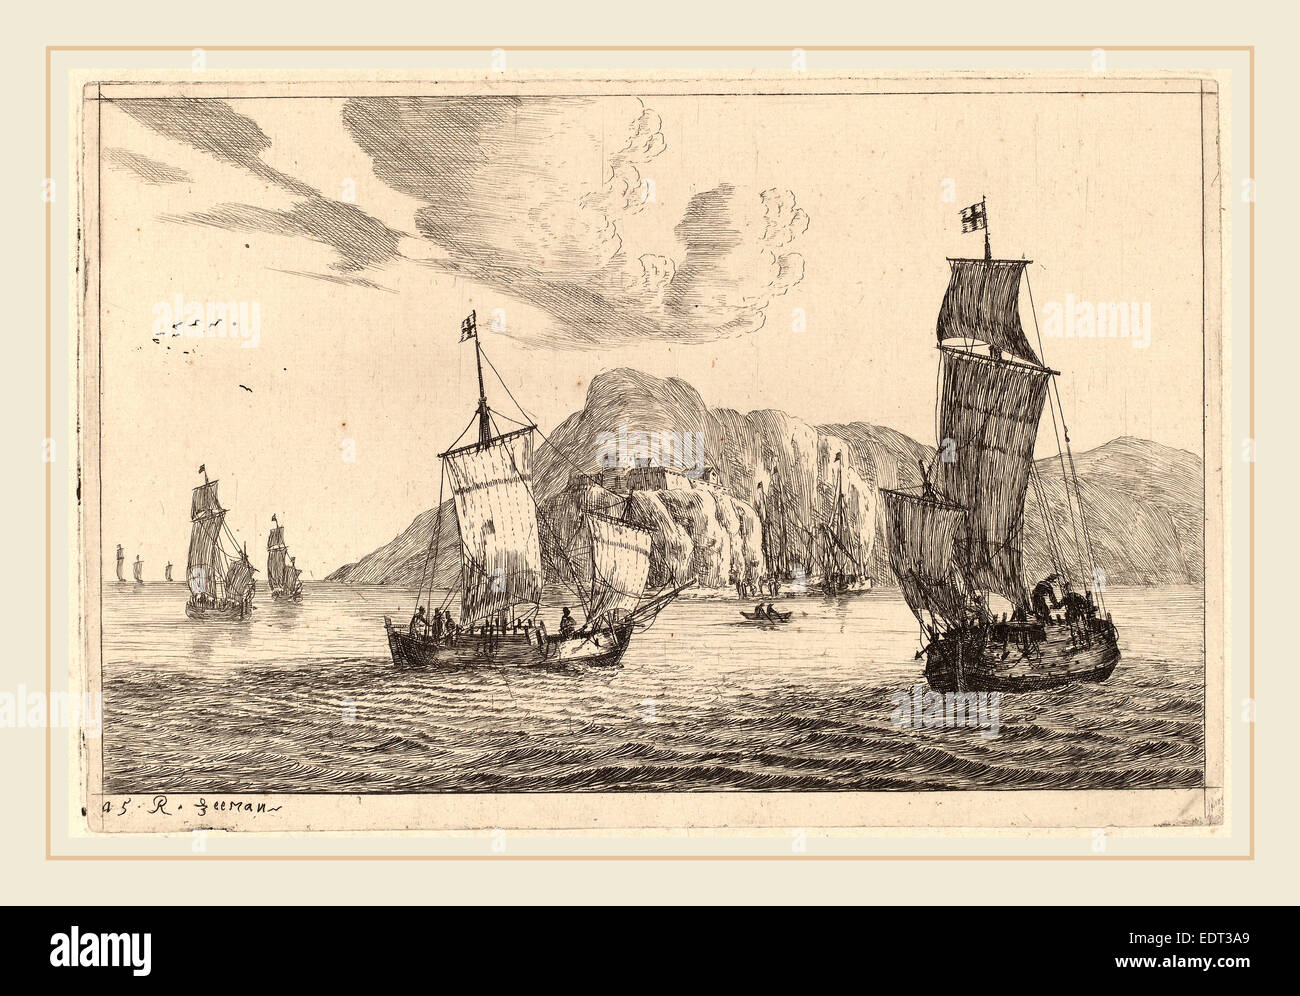 Reinier Nooms, called Zeeman (Dutch, 1624-1664), Harbor Scene with Mountainous Background, probably c. 1656, etching - Stock Image